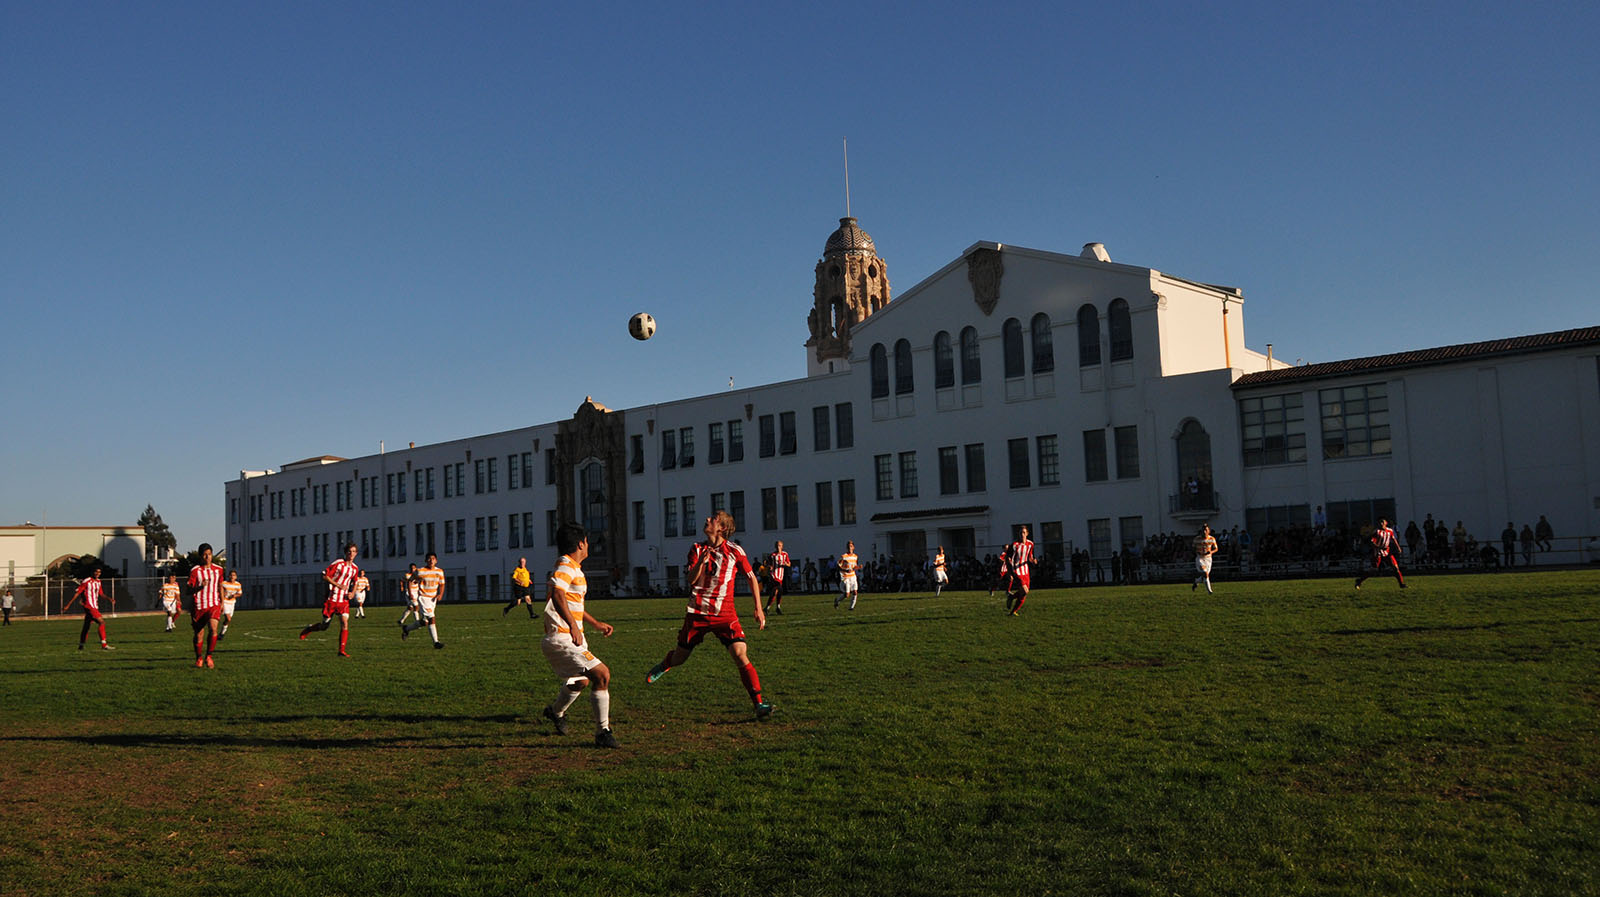 Lowell and Mission High soccer players wait for a ball during a regular season game. Photo by Alejandro B. Rosas